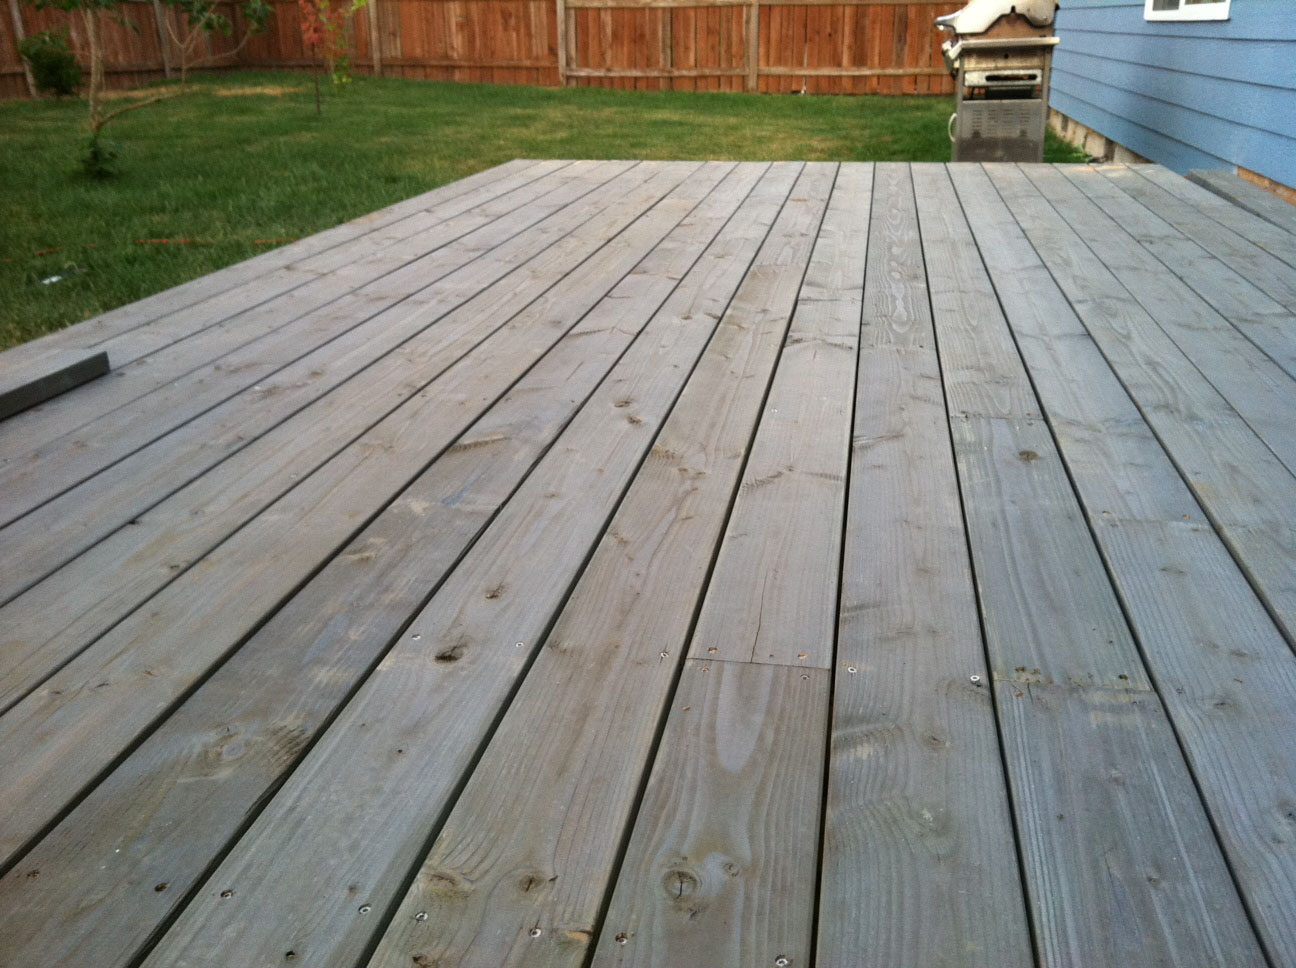 Stupendous Fence Construction Blog Tendency Fir Azek Deck Past Because I Recently Installed A Deck Using A Treated Lumber Elite Ihave Avoided Treated Decking houzz-02 Azek Decking Reviews